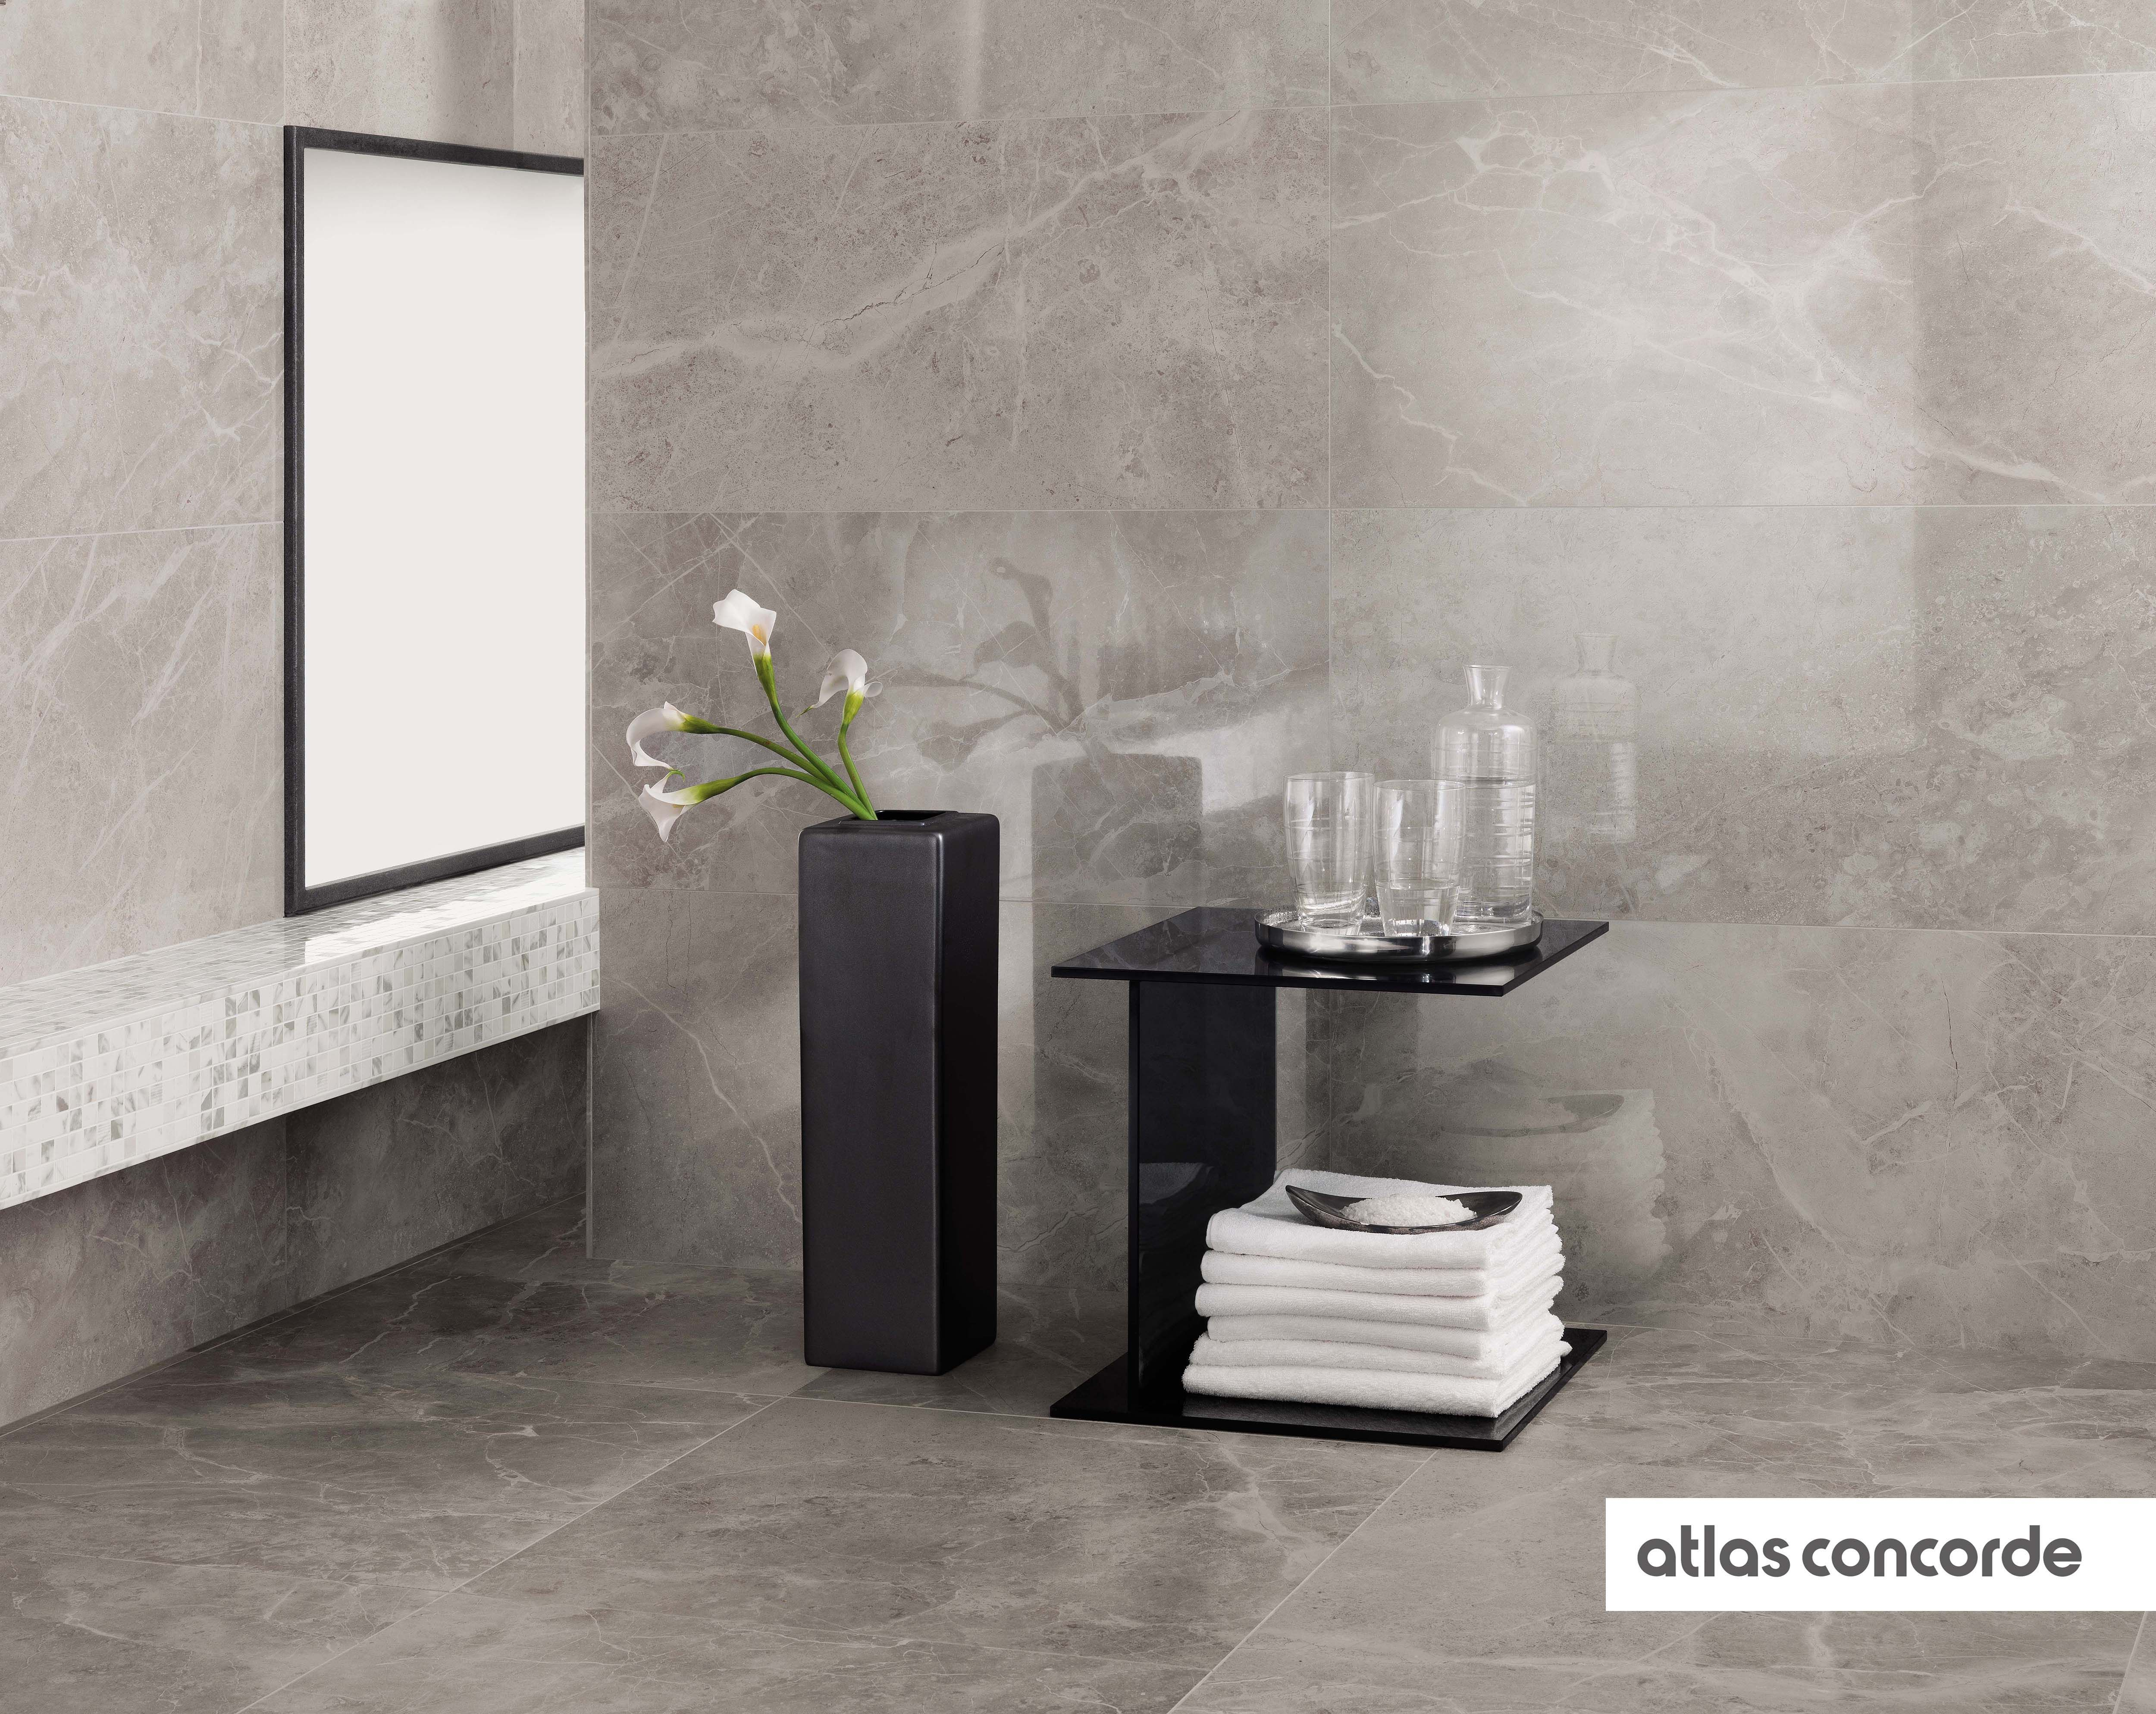 1000+ images about Marble look tile on Pinterest